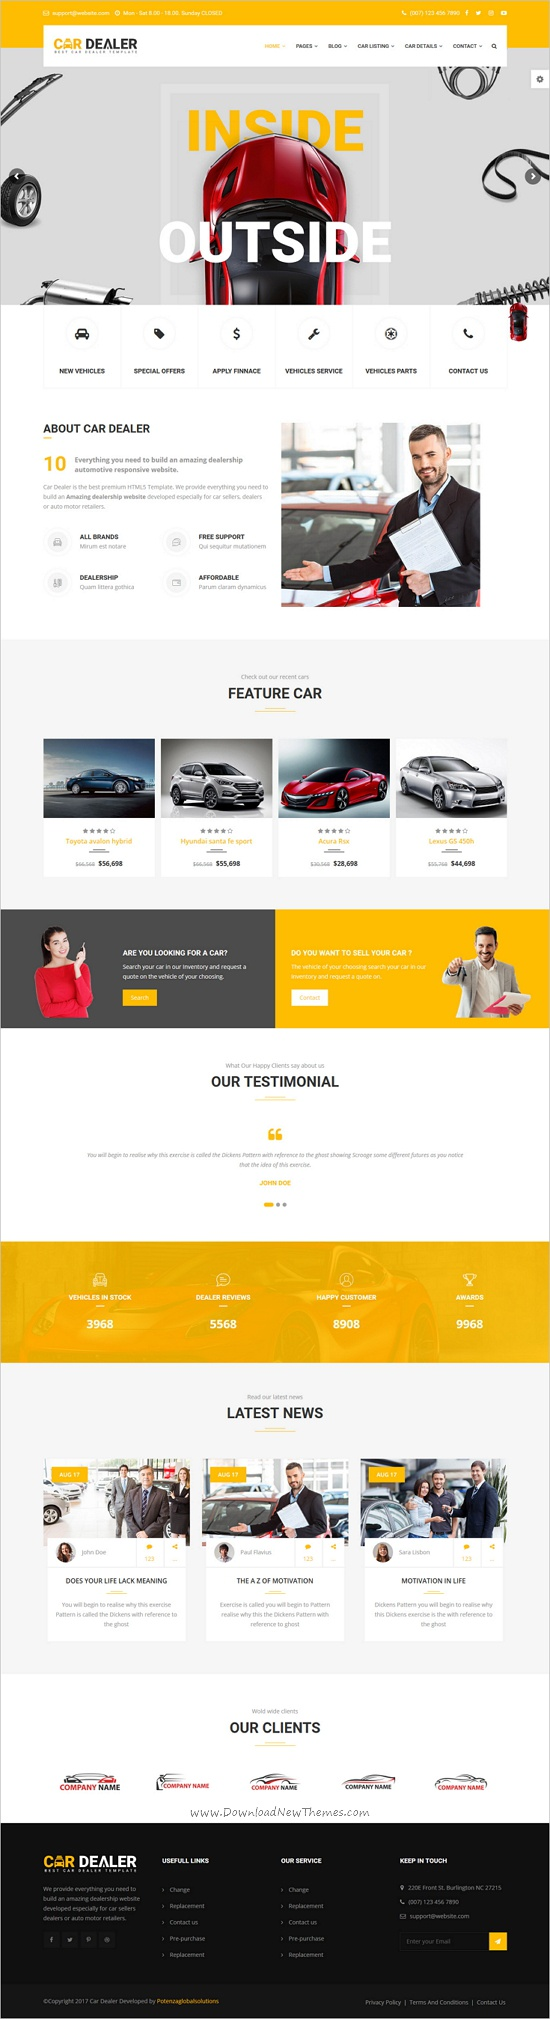 Car Dealer Is A Wonderful Responsive 6in1 Html5 Bootstrap Template